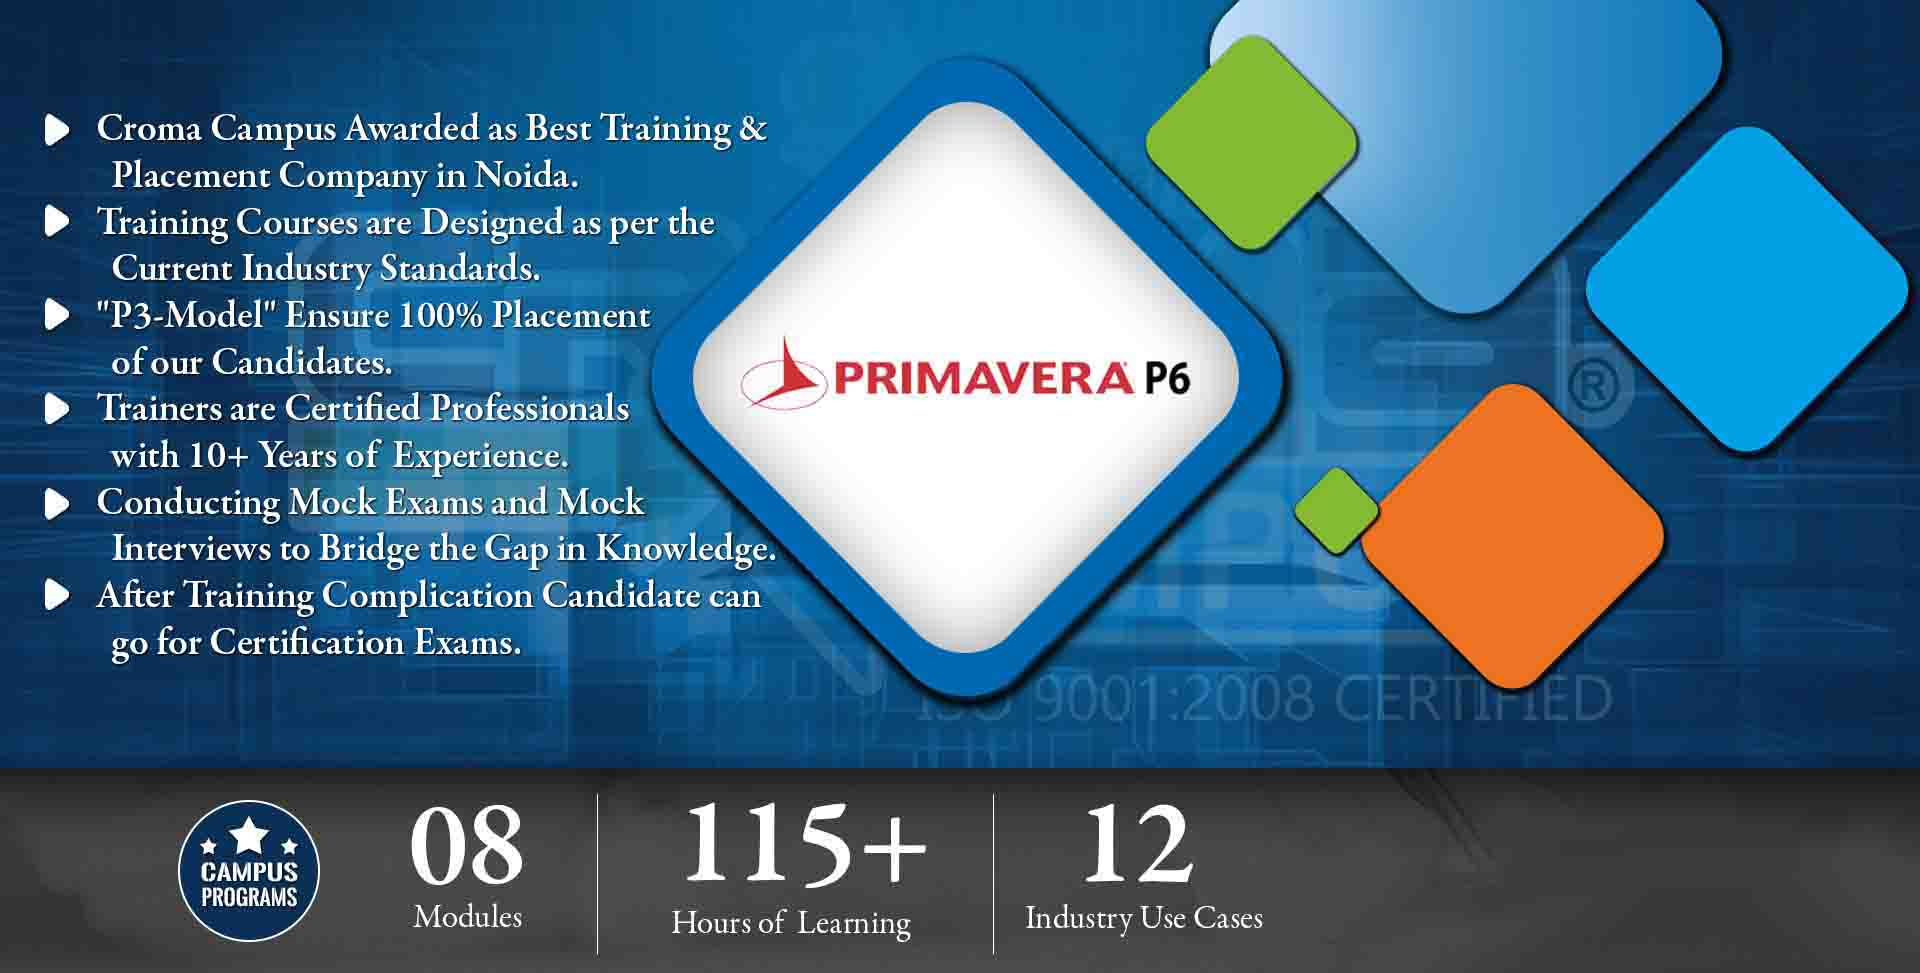 Primavera P6 Training in Gurgaon- Croma Campus